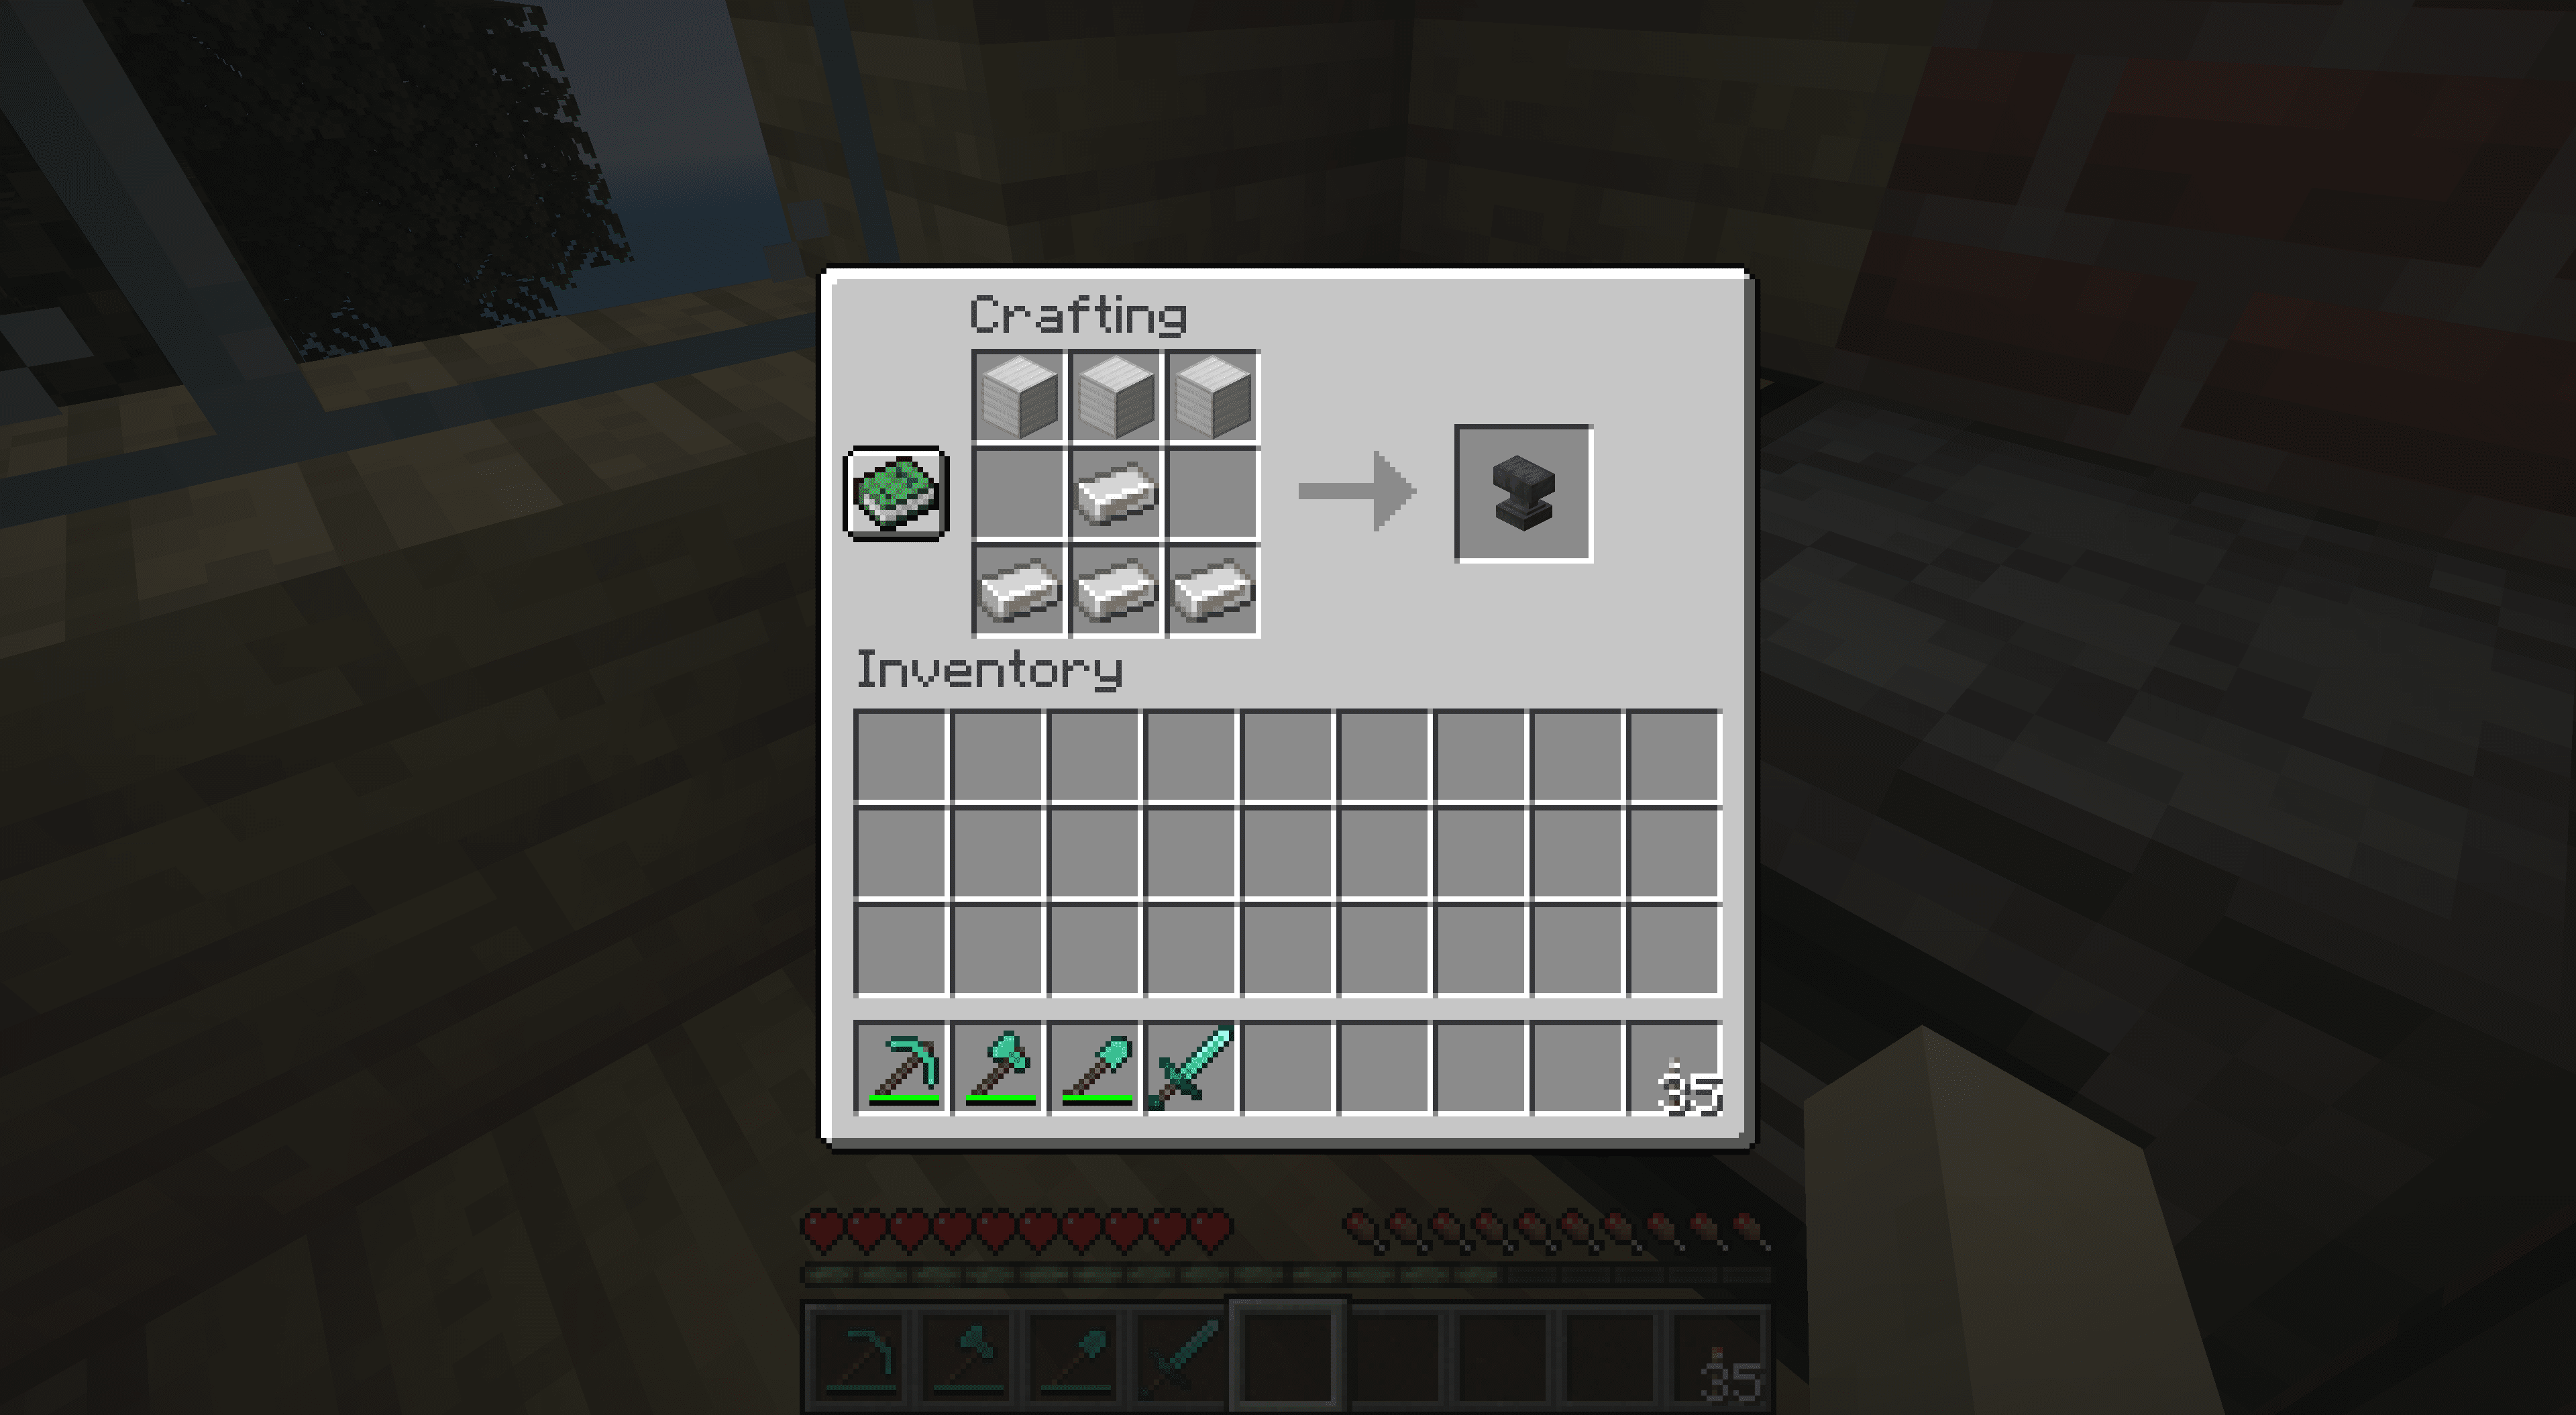 Crafting an anvil in Minecraft.